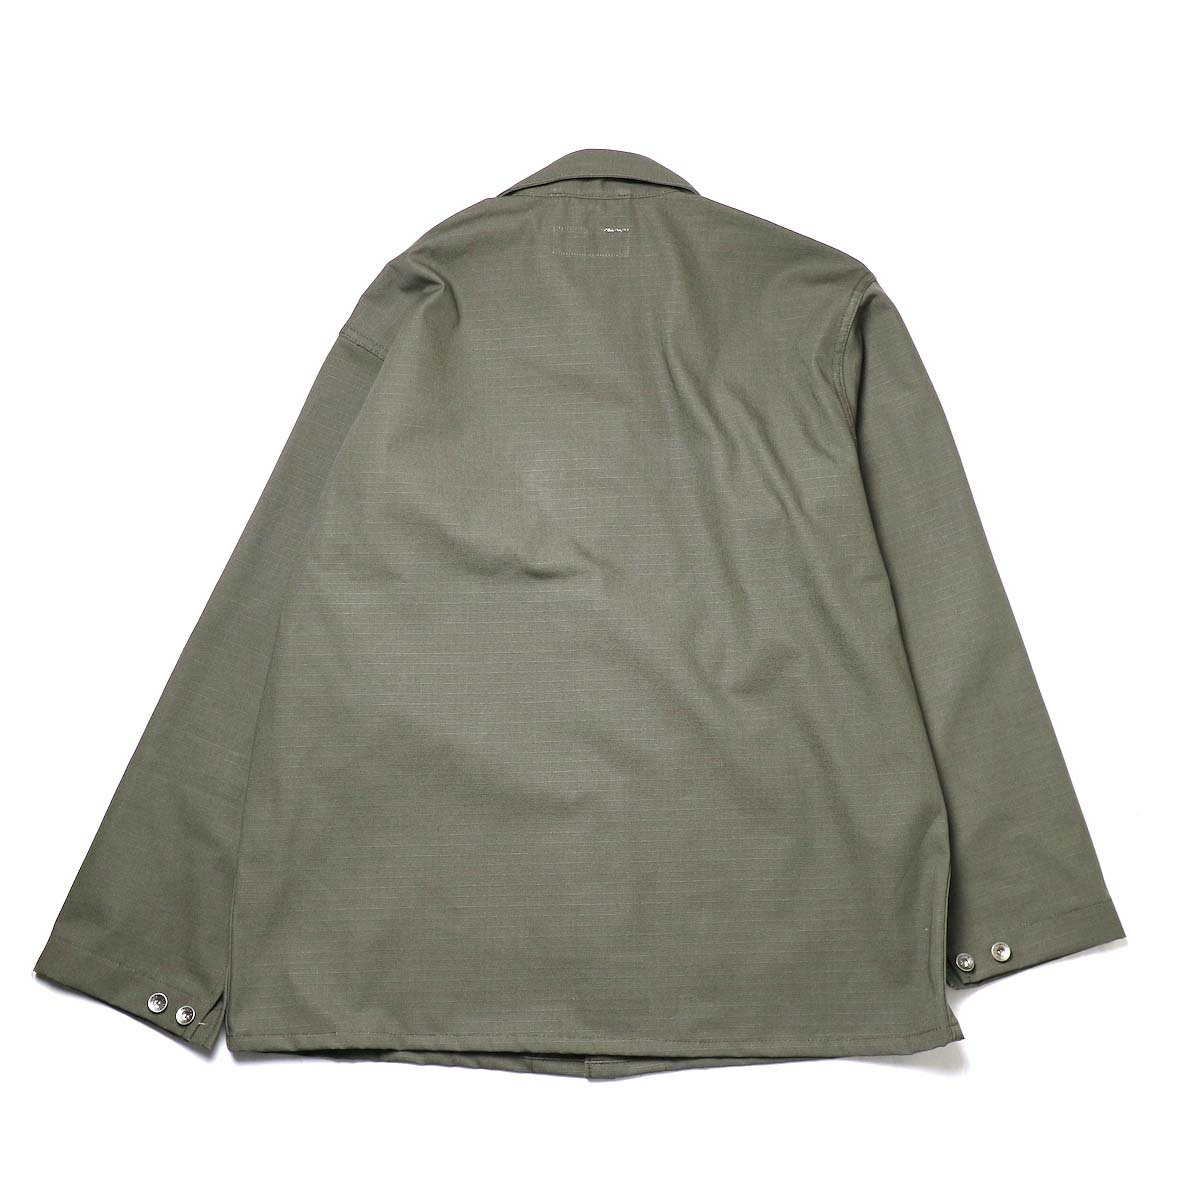 Engineered Garments Workaday / Utility Jacket - Cotton Ripstop (Olive)背面